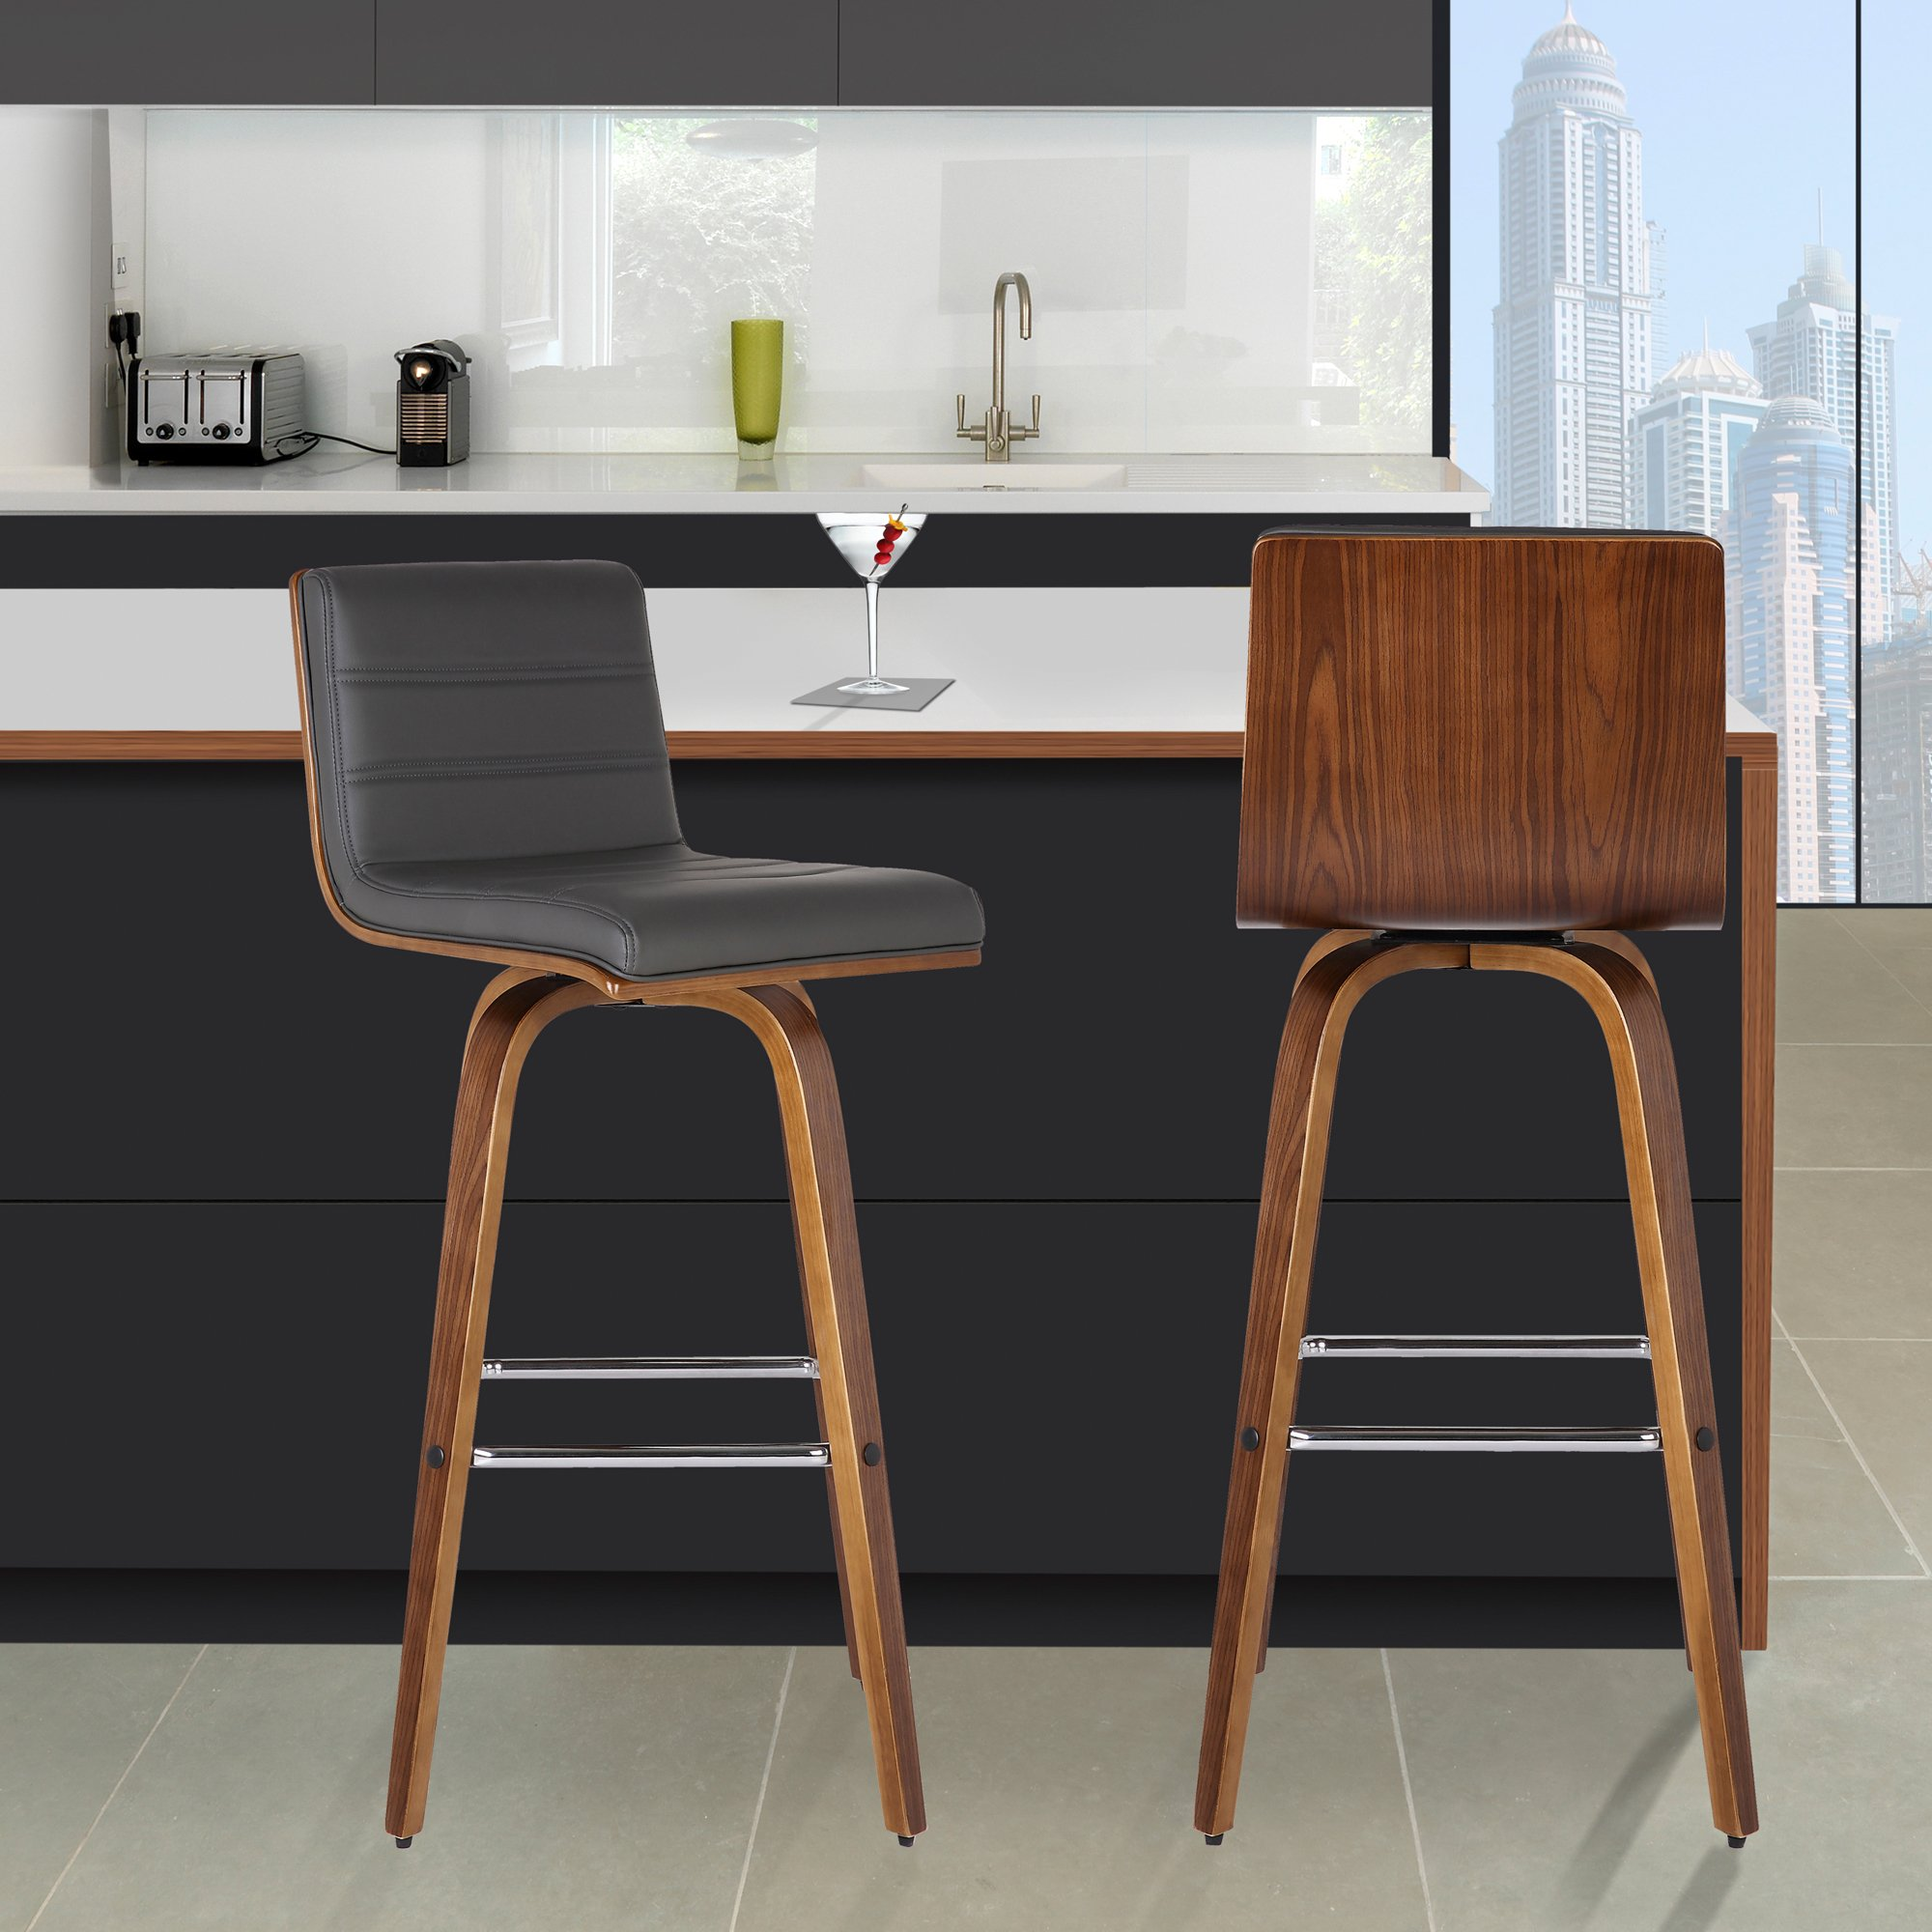 Armen Living Vienna 30'' Bar Height Barstool in Grey Faux Leather and Walnut Wood Finish by Armen Living